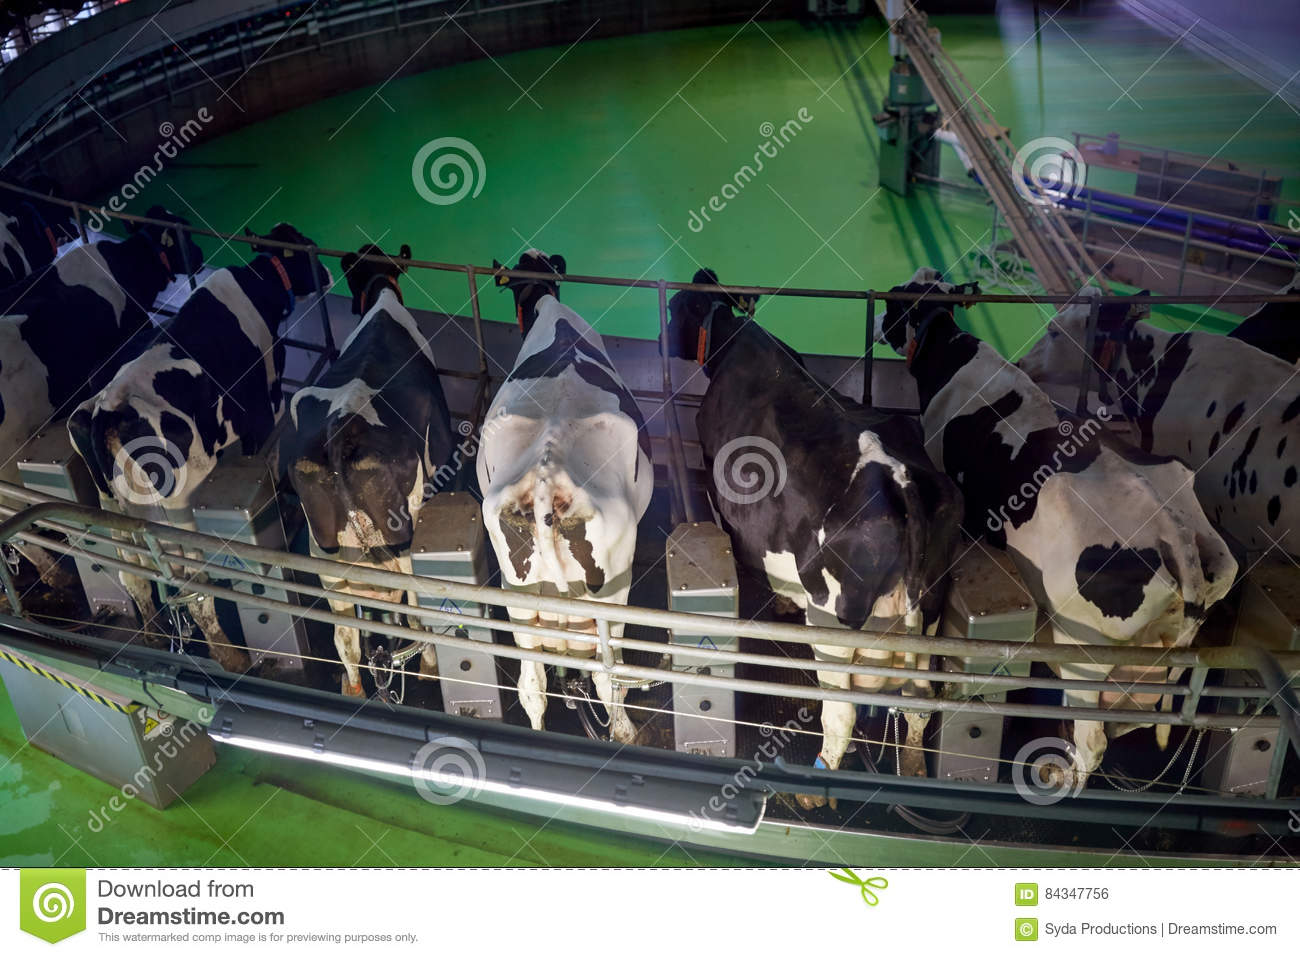 Dairy Farm Group: Redesign of Business Systems and Processes Harvard Case Solution & Analysis